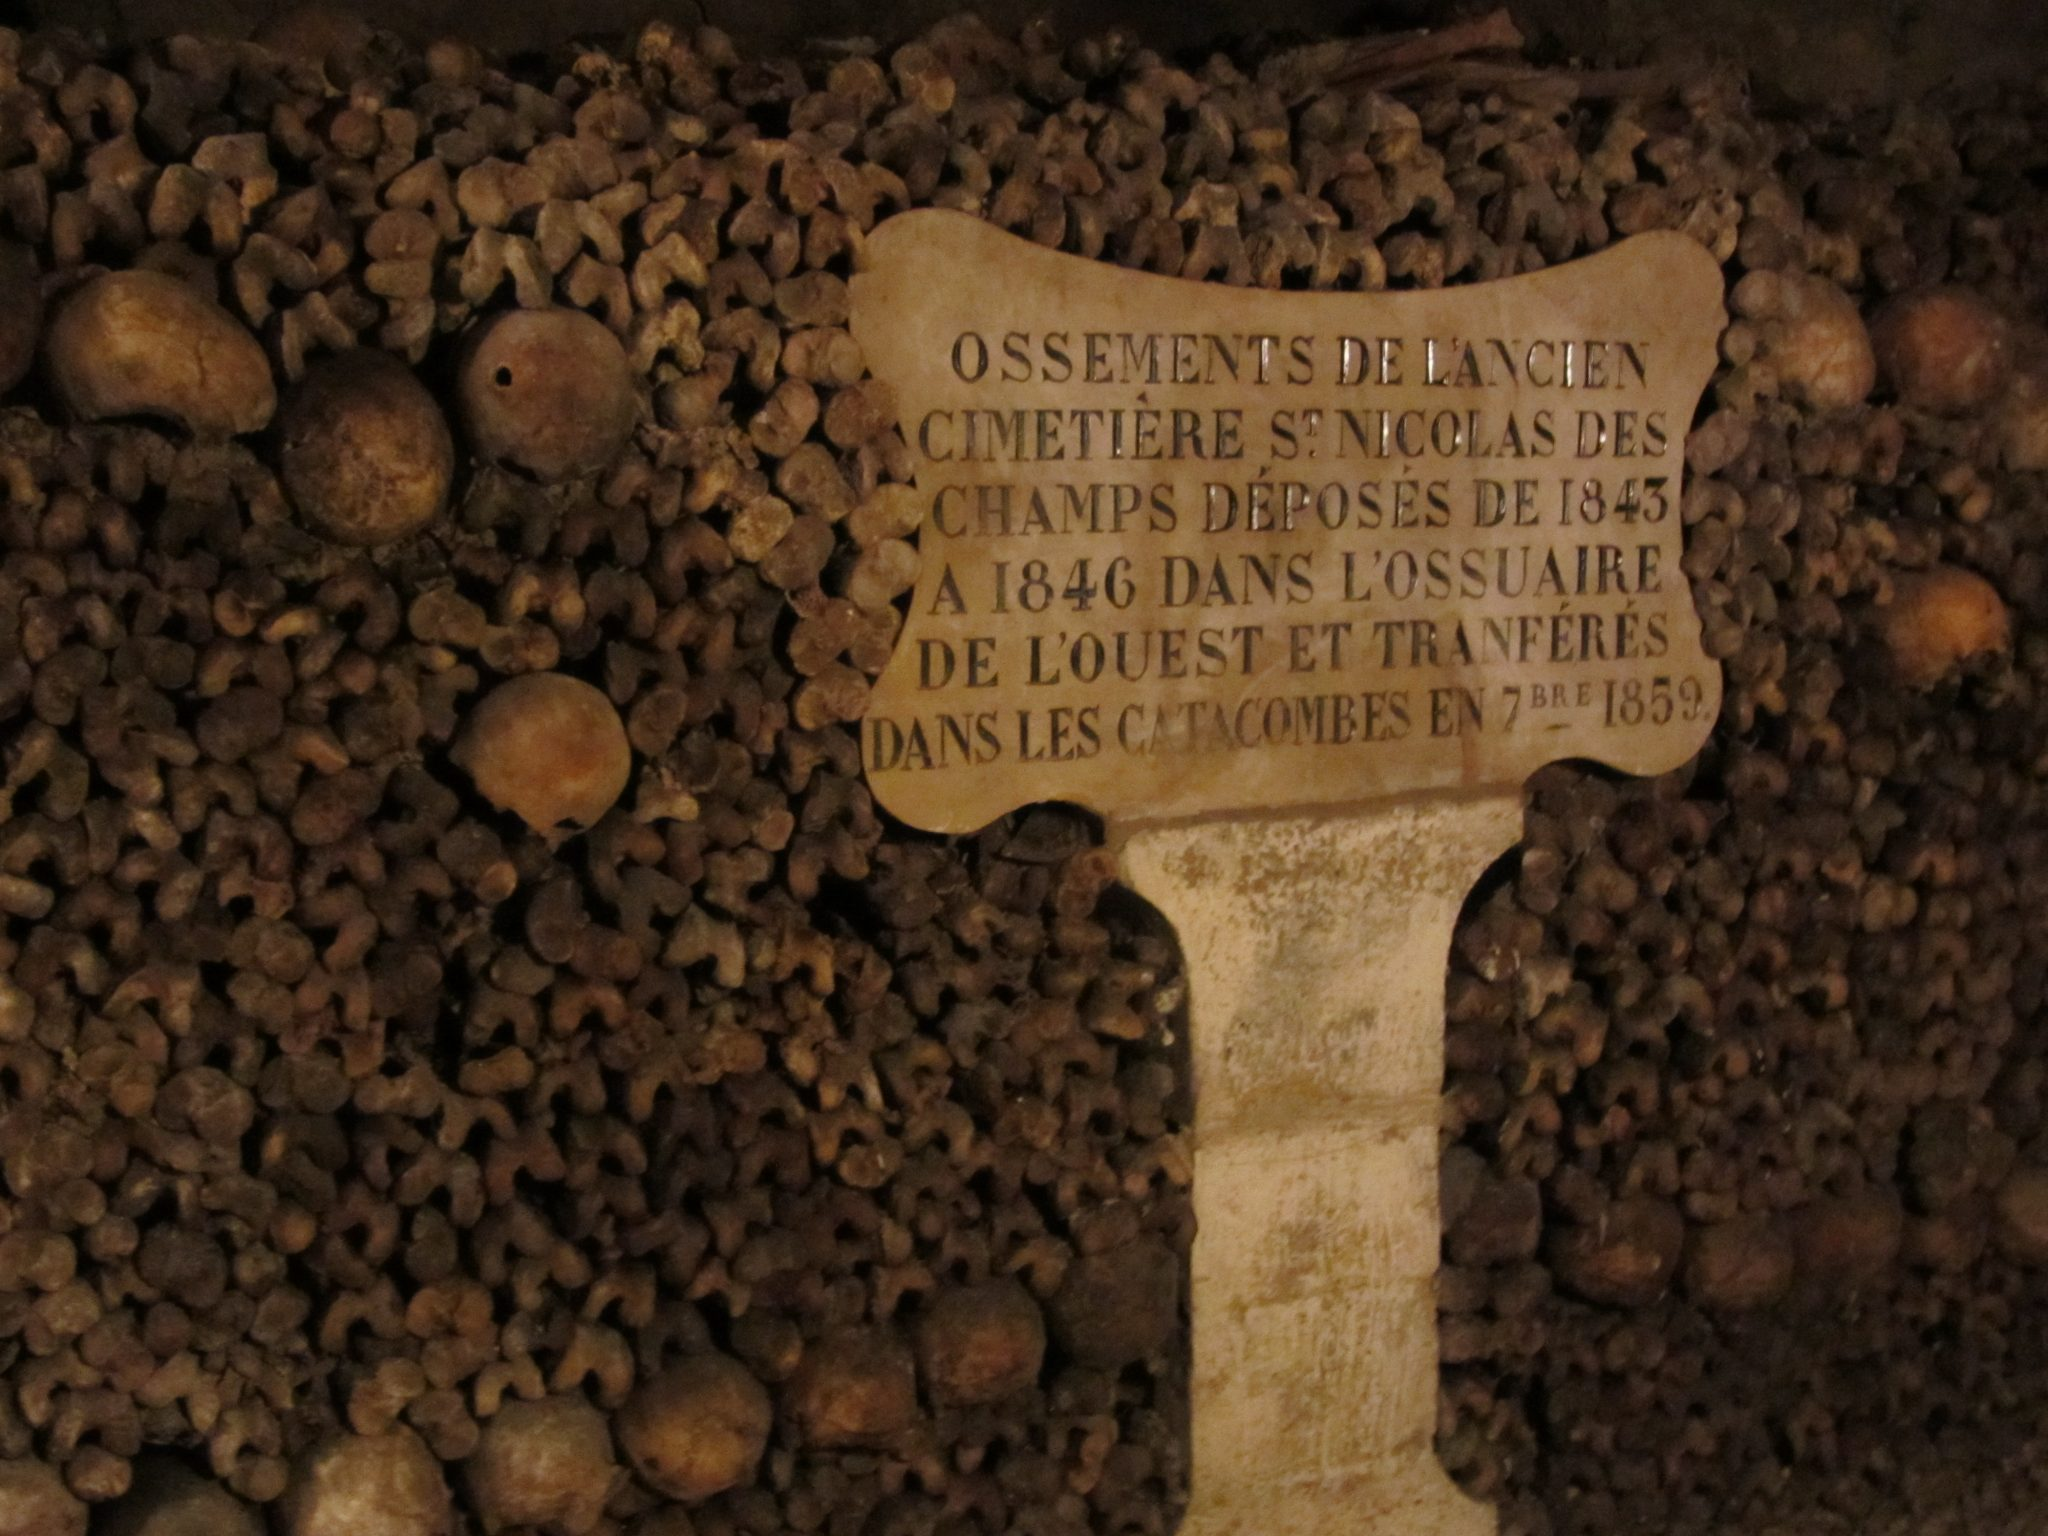 Sign in French Amongst the Bones in the Catacombs of Paris